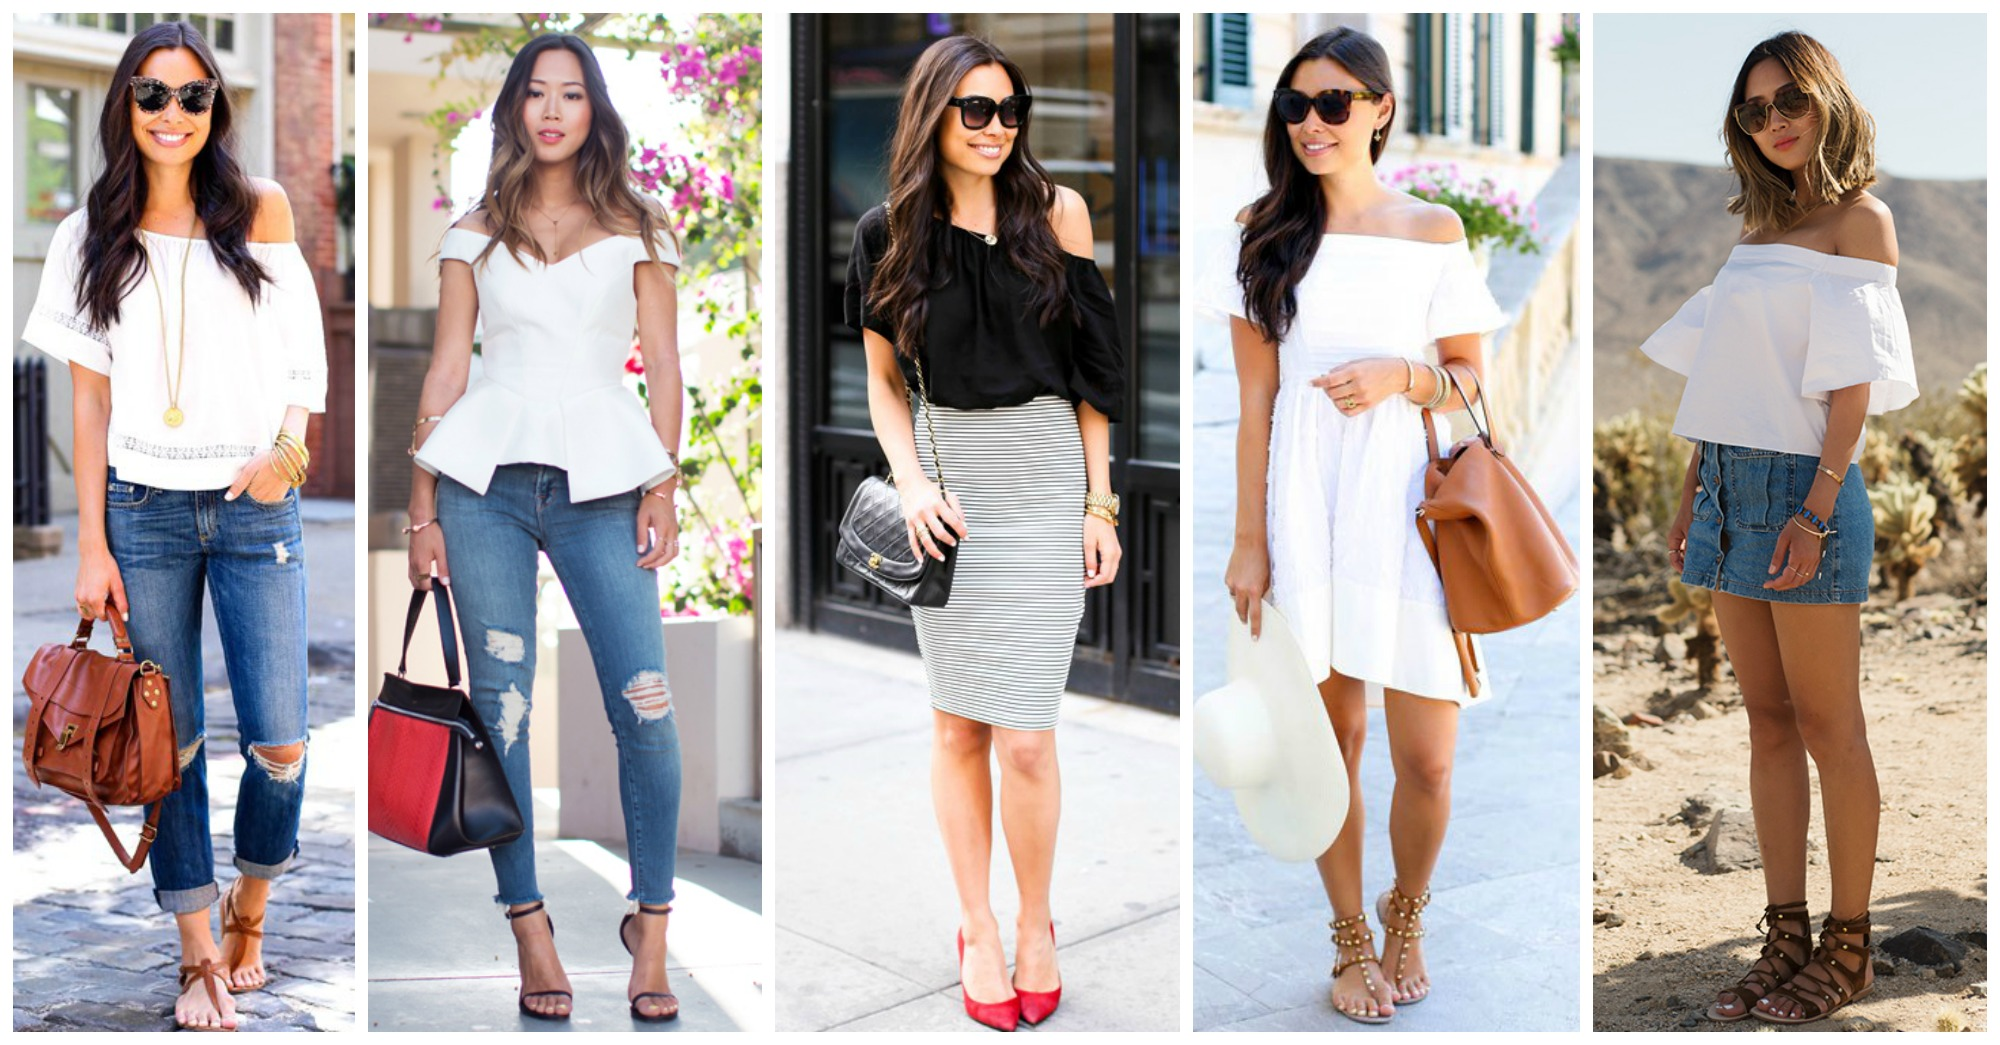 15 Chic Ways to Follow the Off the Shoulders Fashion Trend